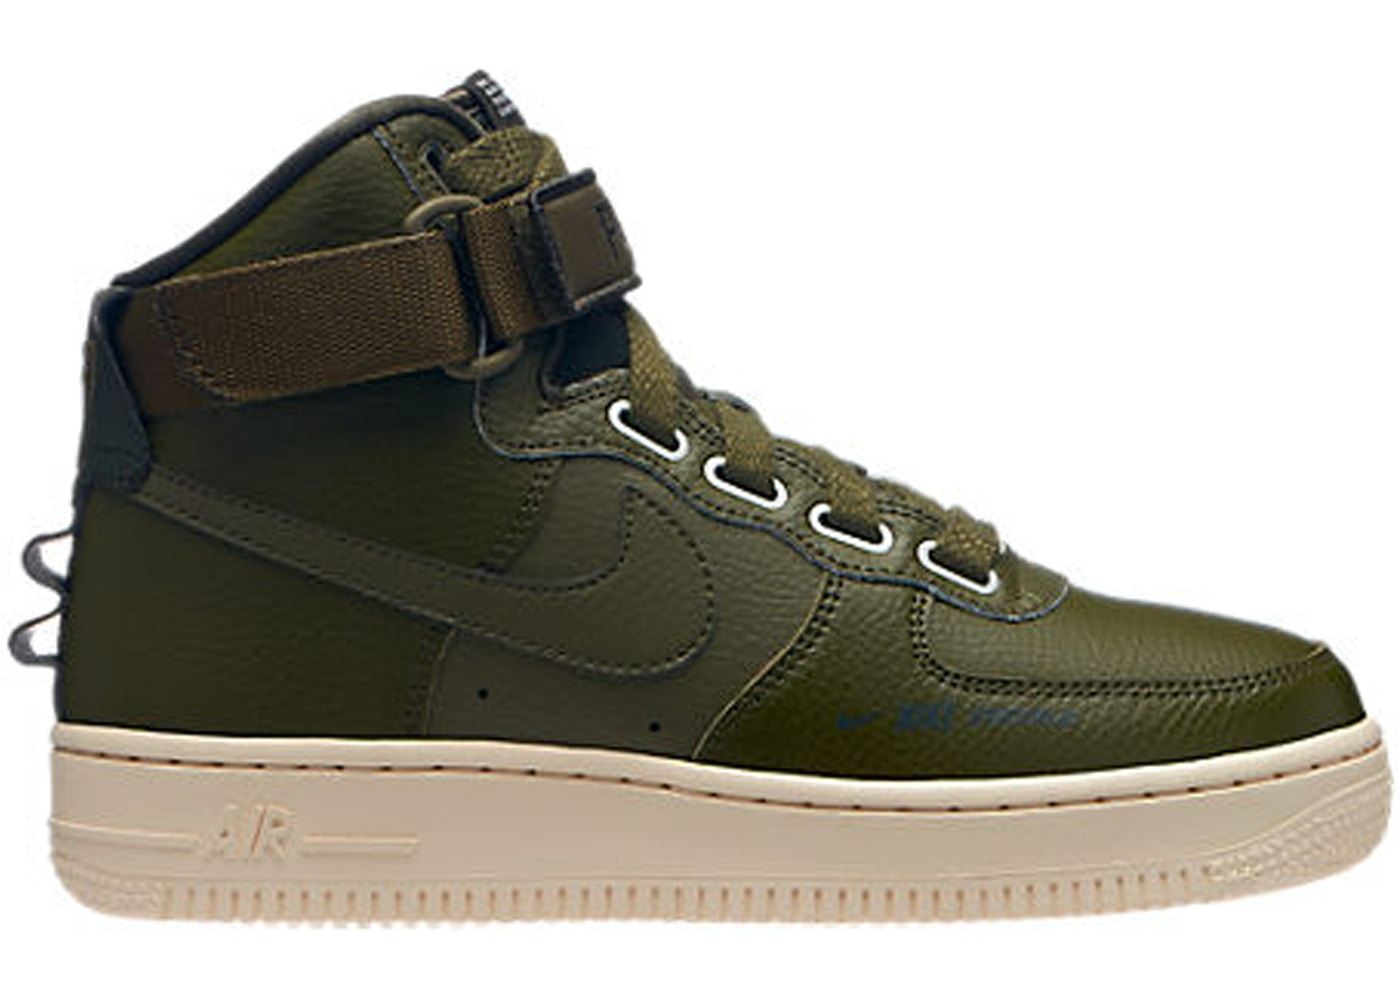 Air Force 1 High Utility Olive Canvas (W)